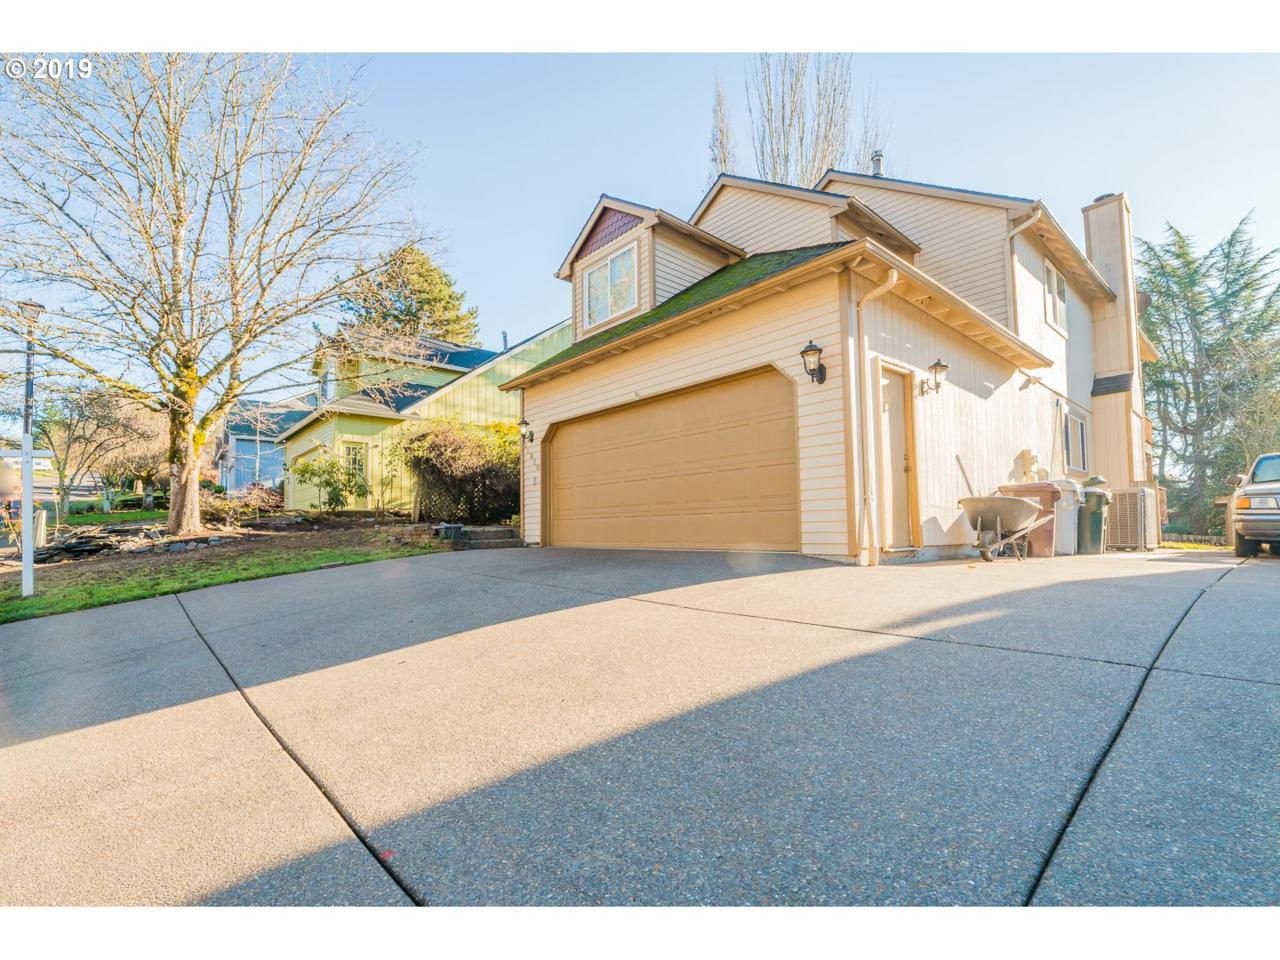 11840 Timber Valley Dr - Photo 1